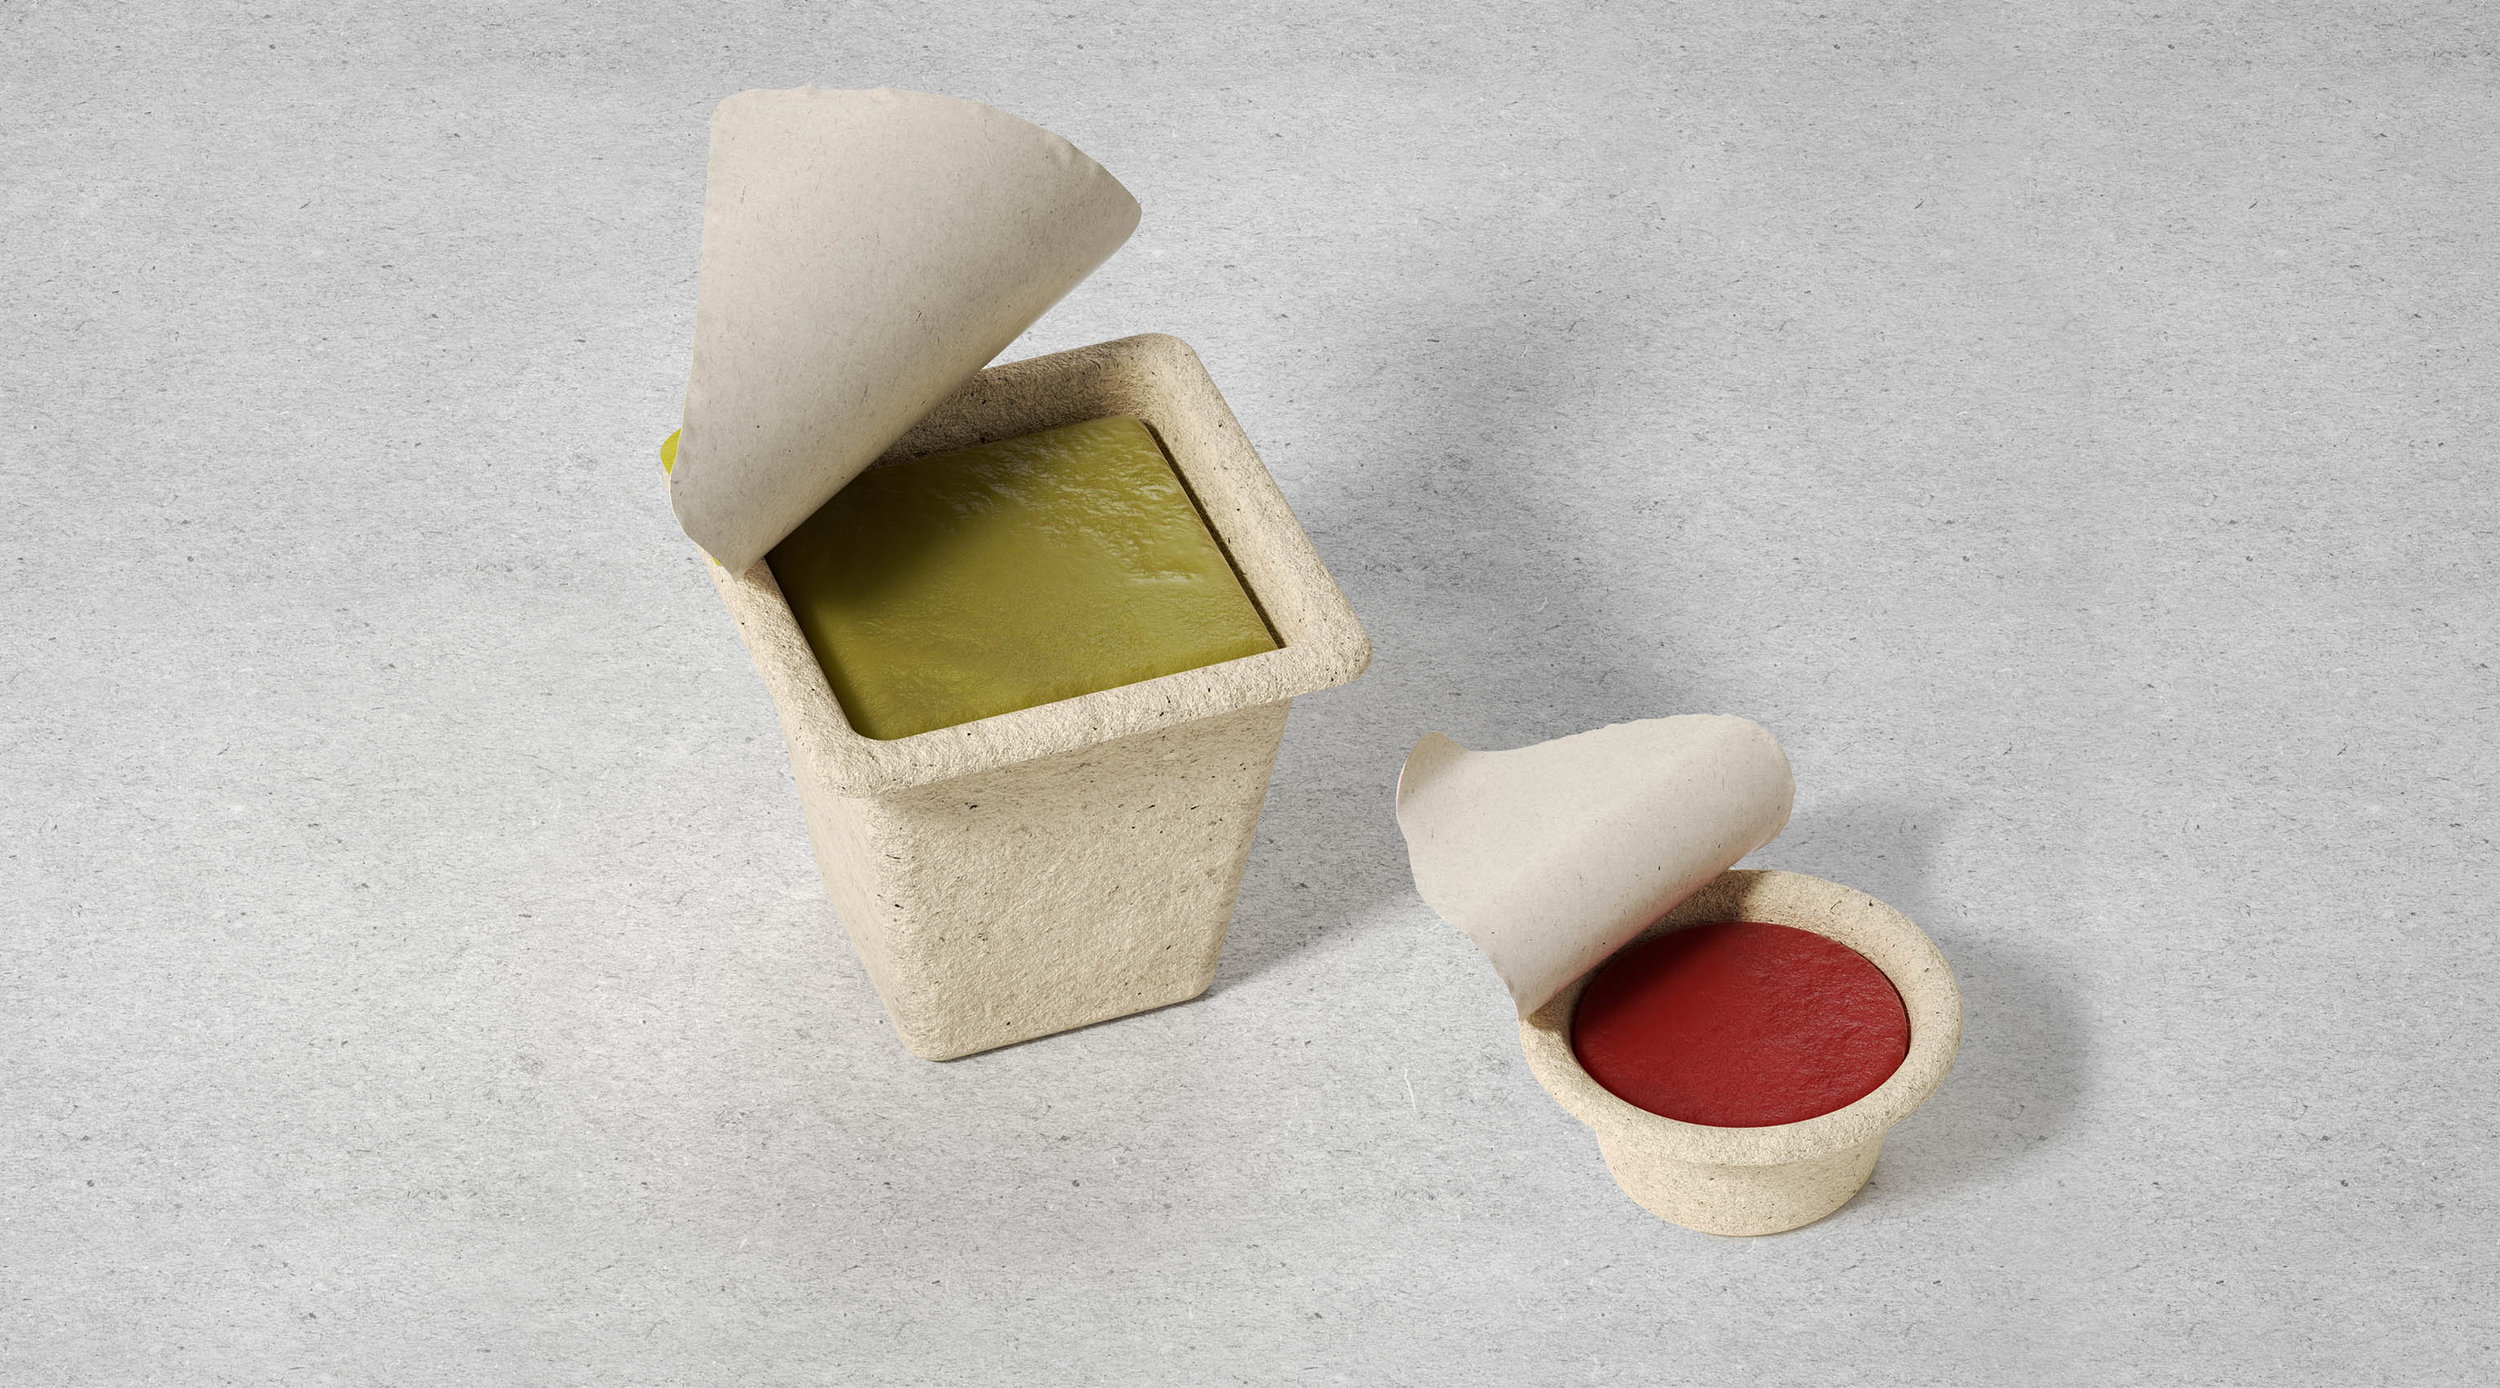 Solid Shampoo and Hair Balsam in Recycled Paper Packaging / World Brand Design Society